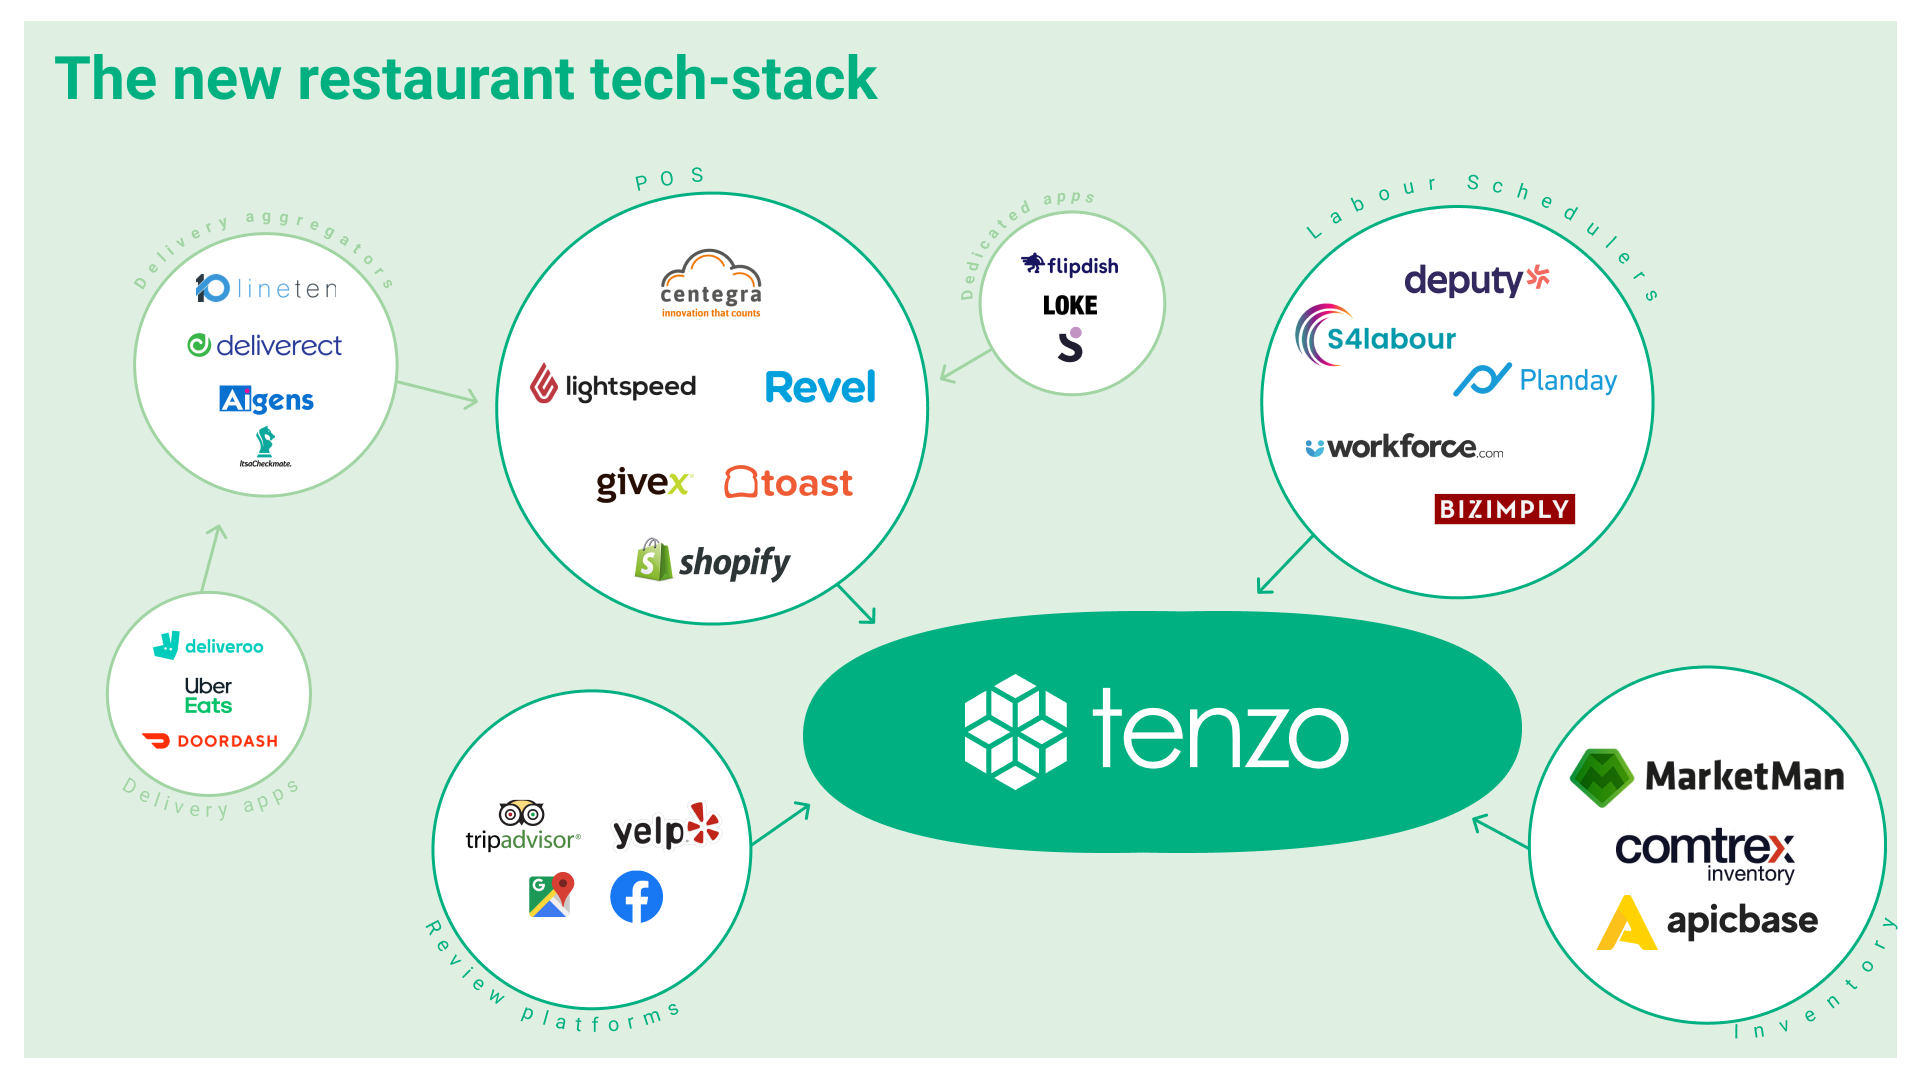 The new restaurant tech stack